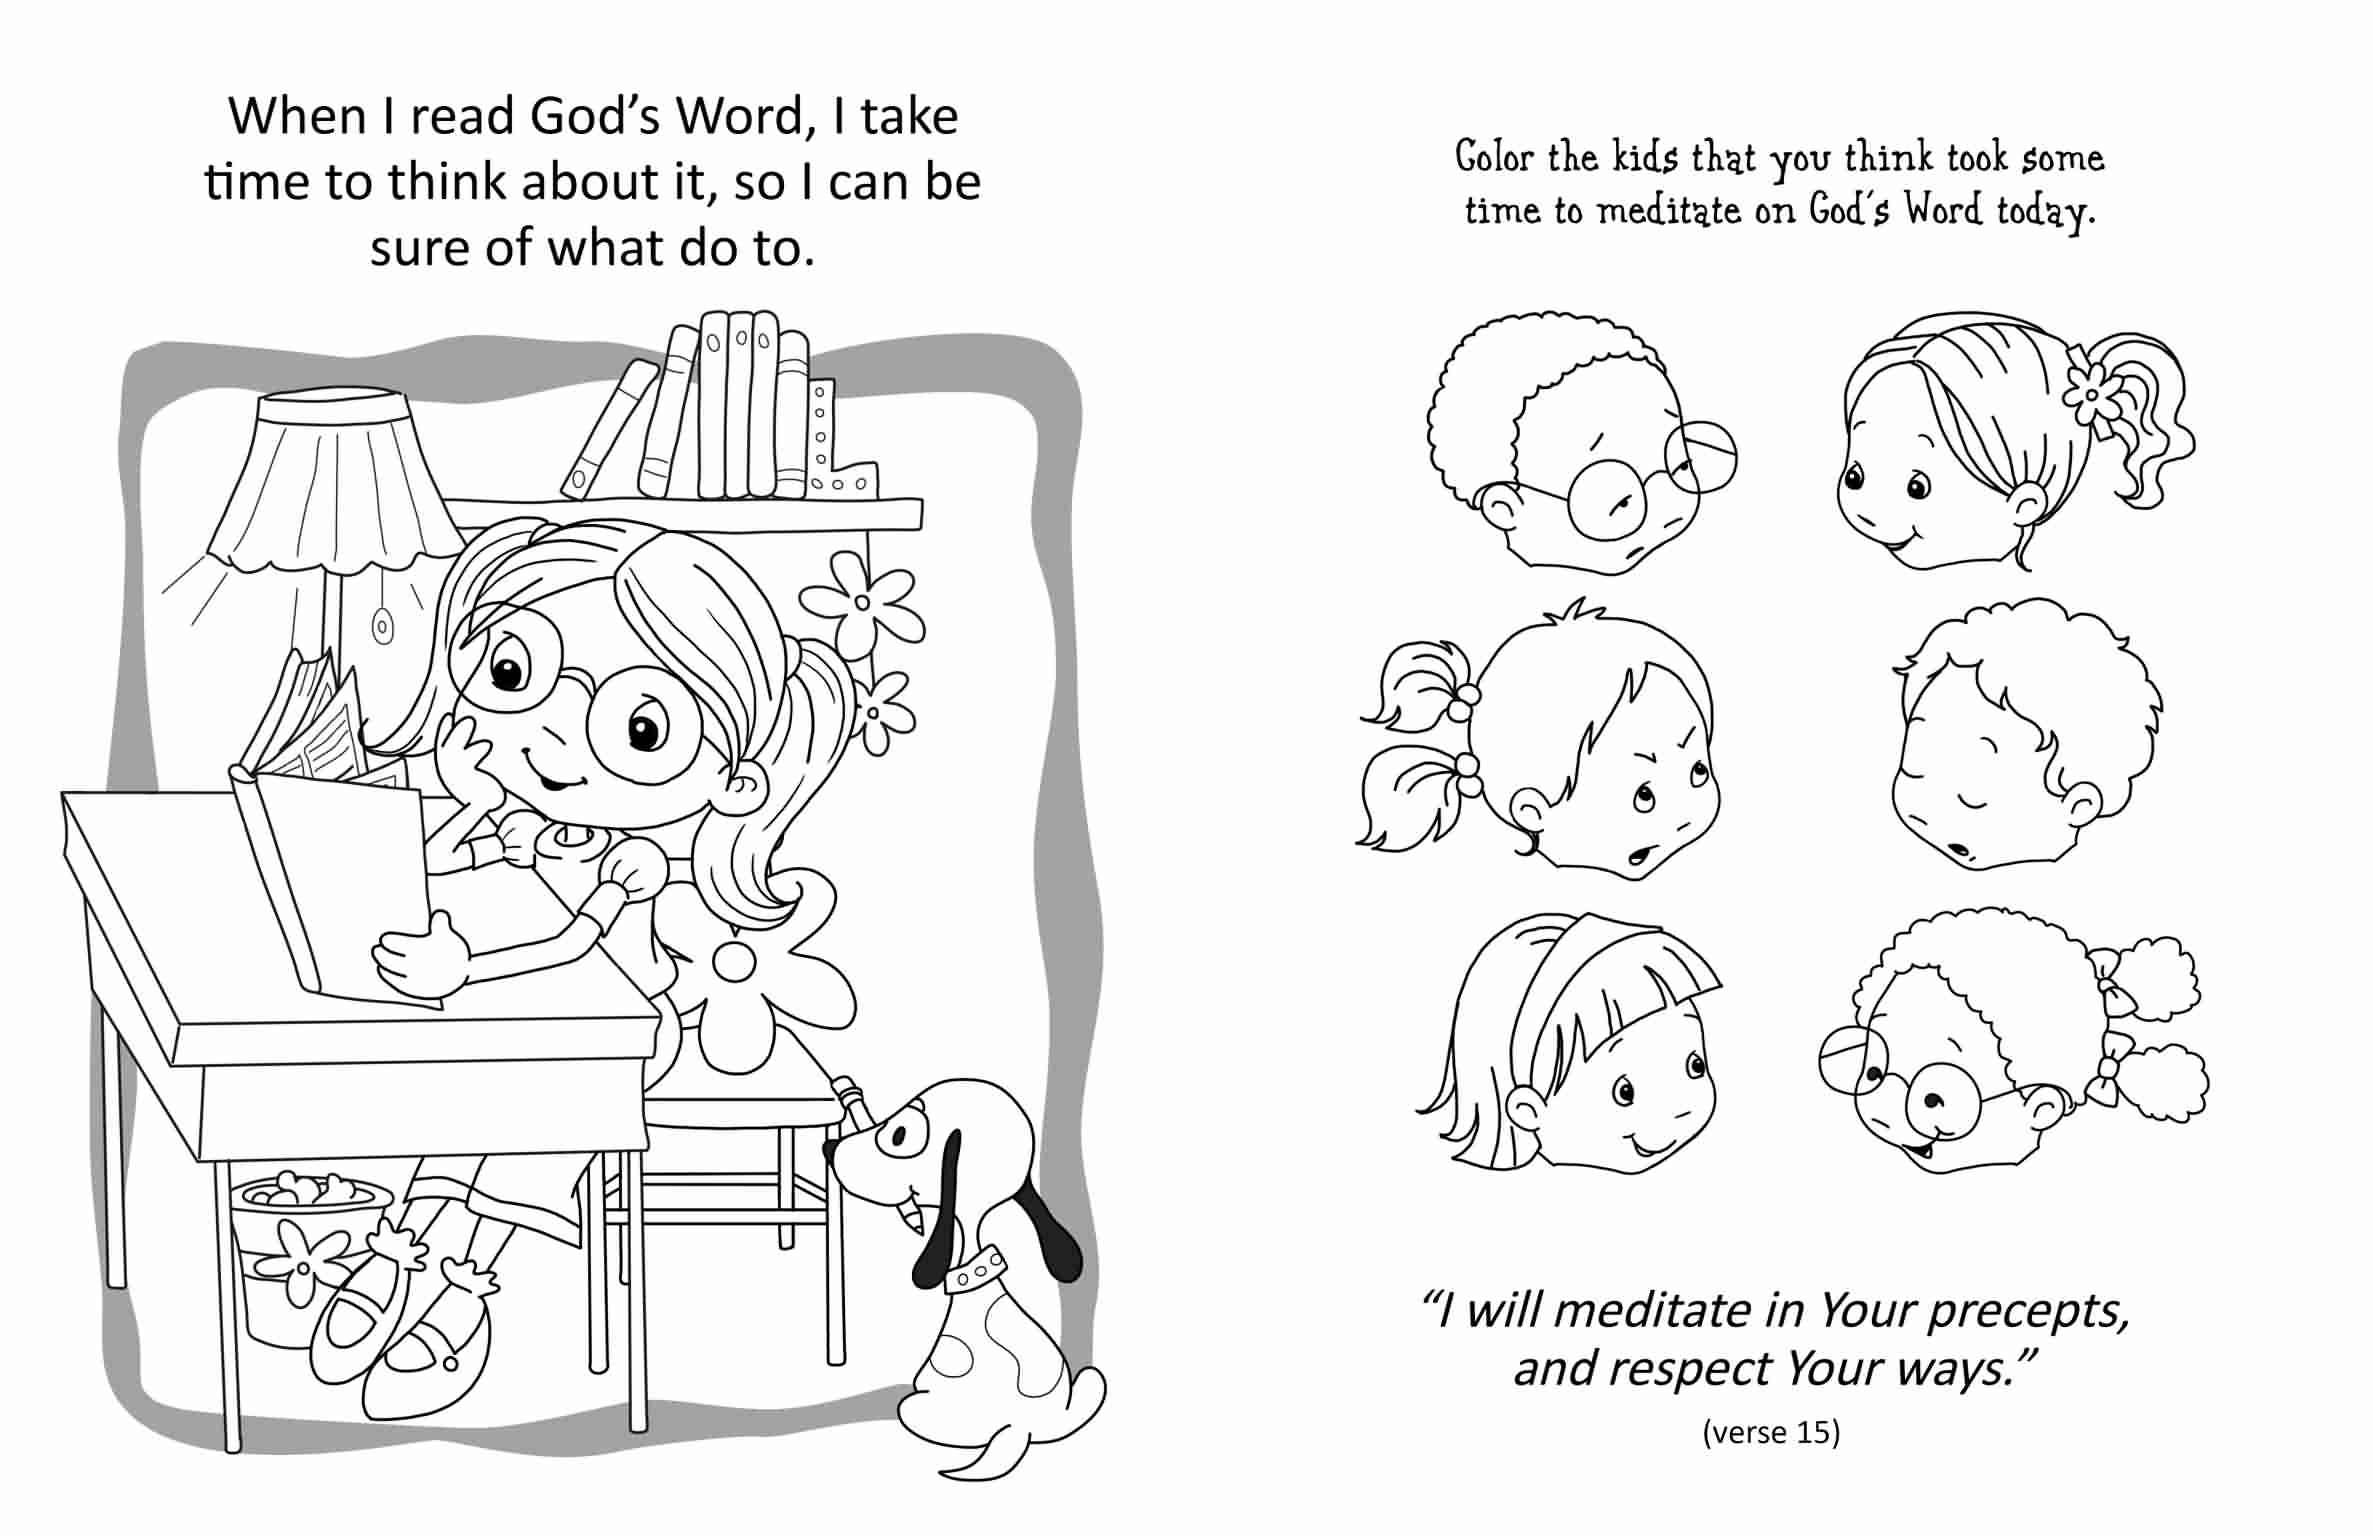 coloring pages for psalm 119 - photo#8